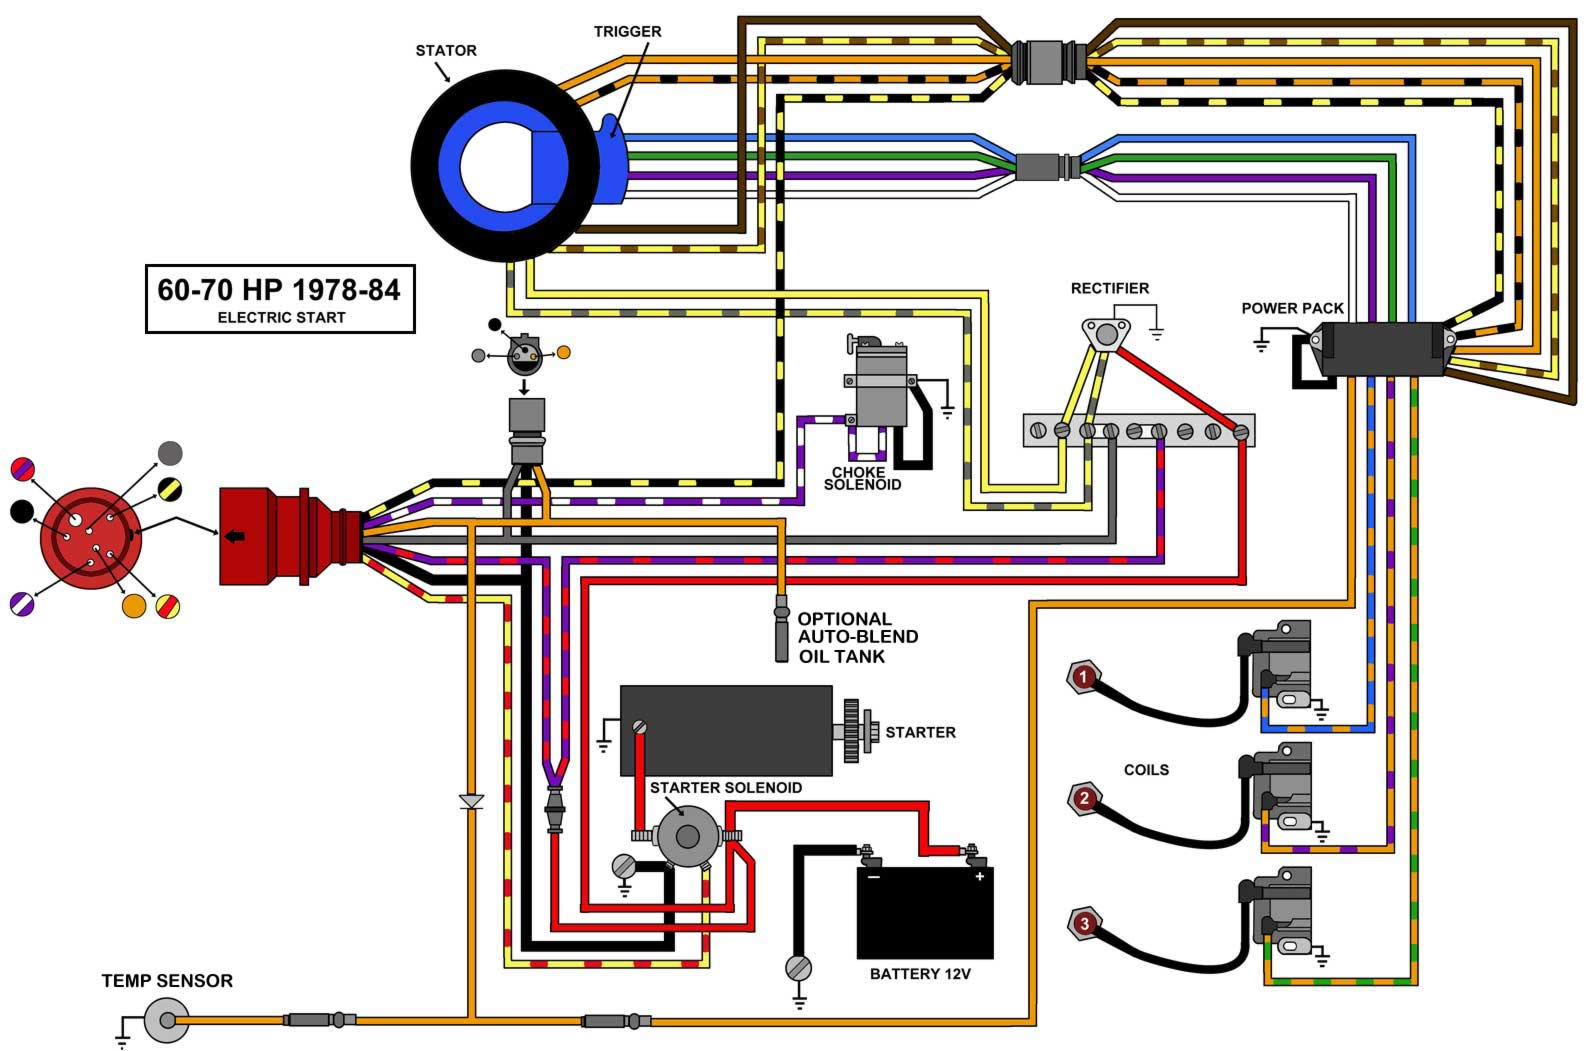 [DIAGRAM_3NM]  EVINRUDE JOHNSON Outboard Wiring Diagrams -- MASTERTECH MARINE -- | 115 Johnson Trim Motor Wiring Diagram |  | MASTERTECH MARINE